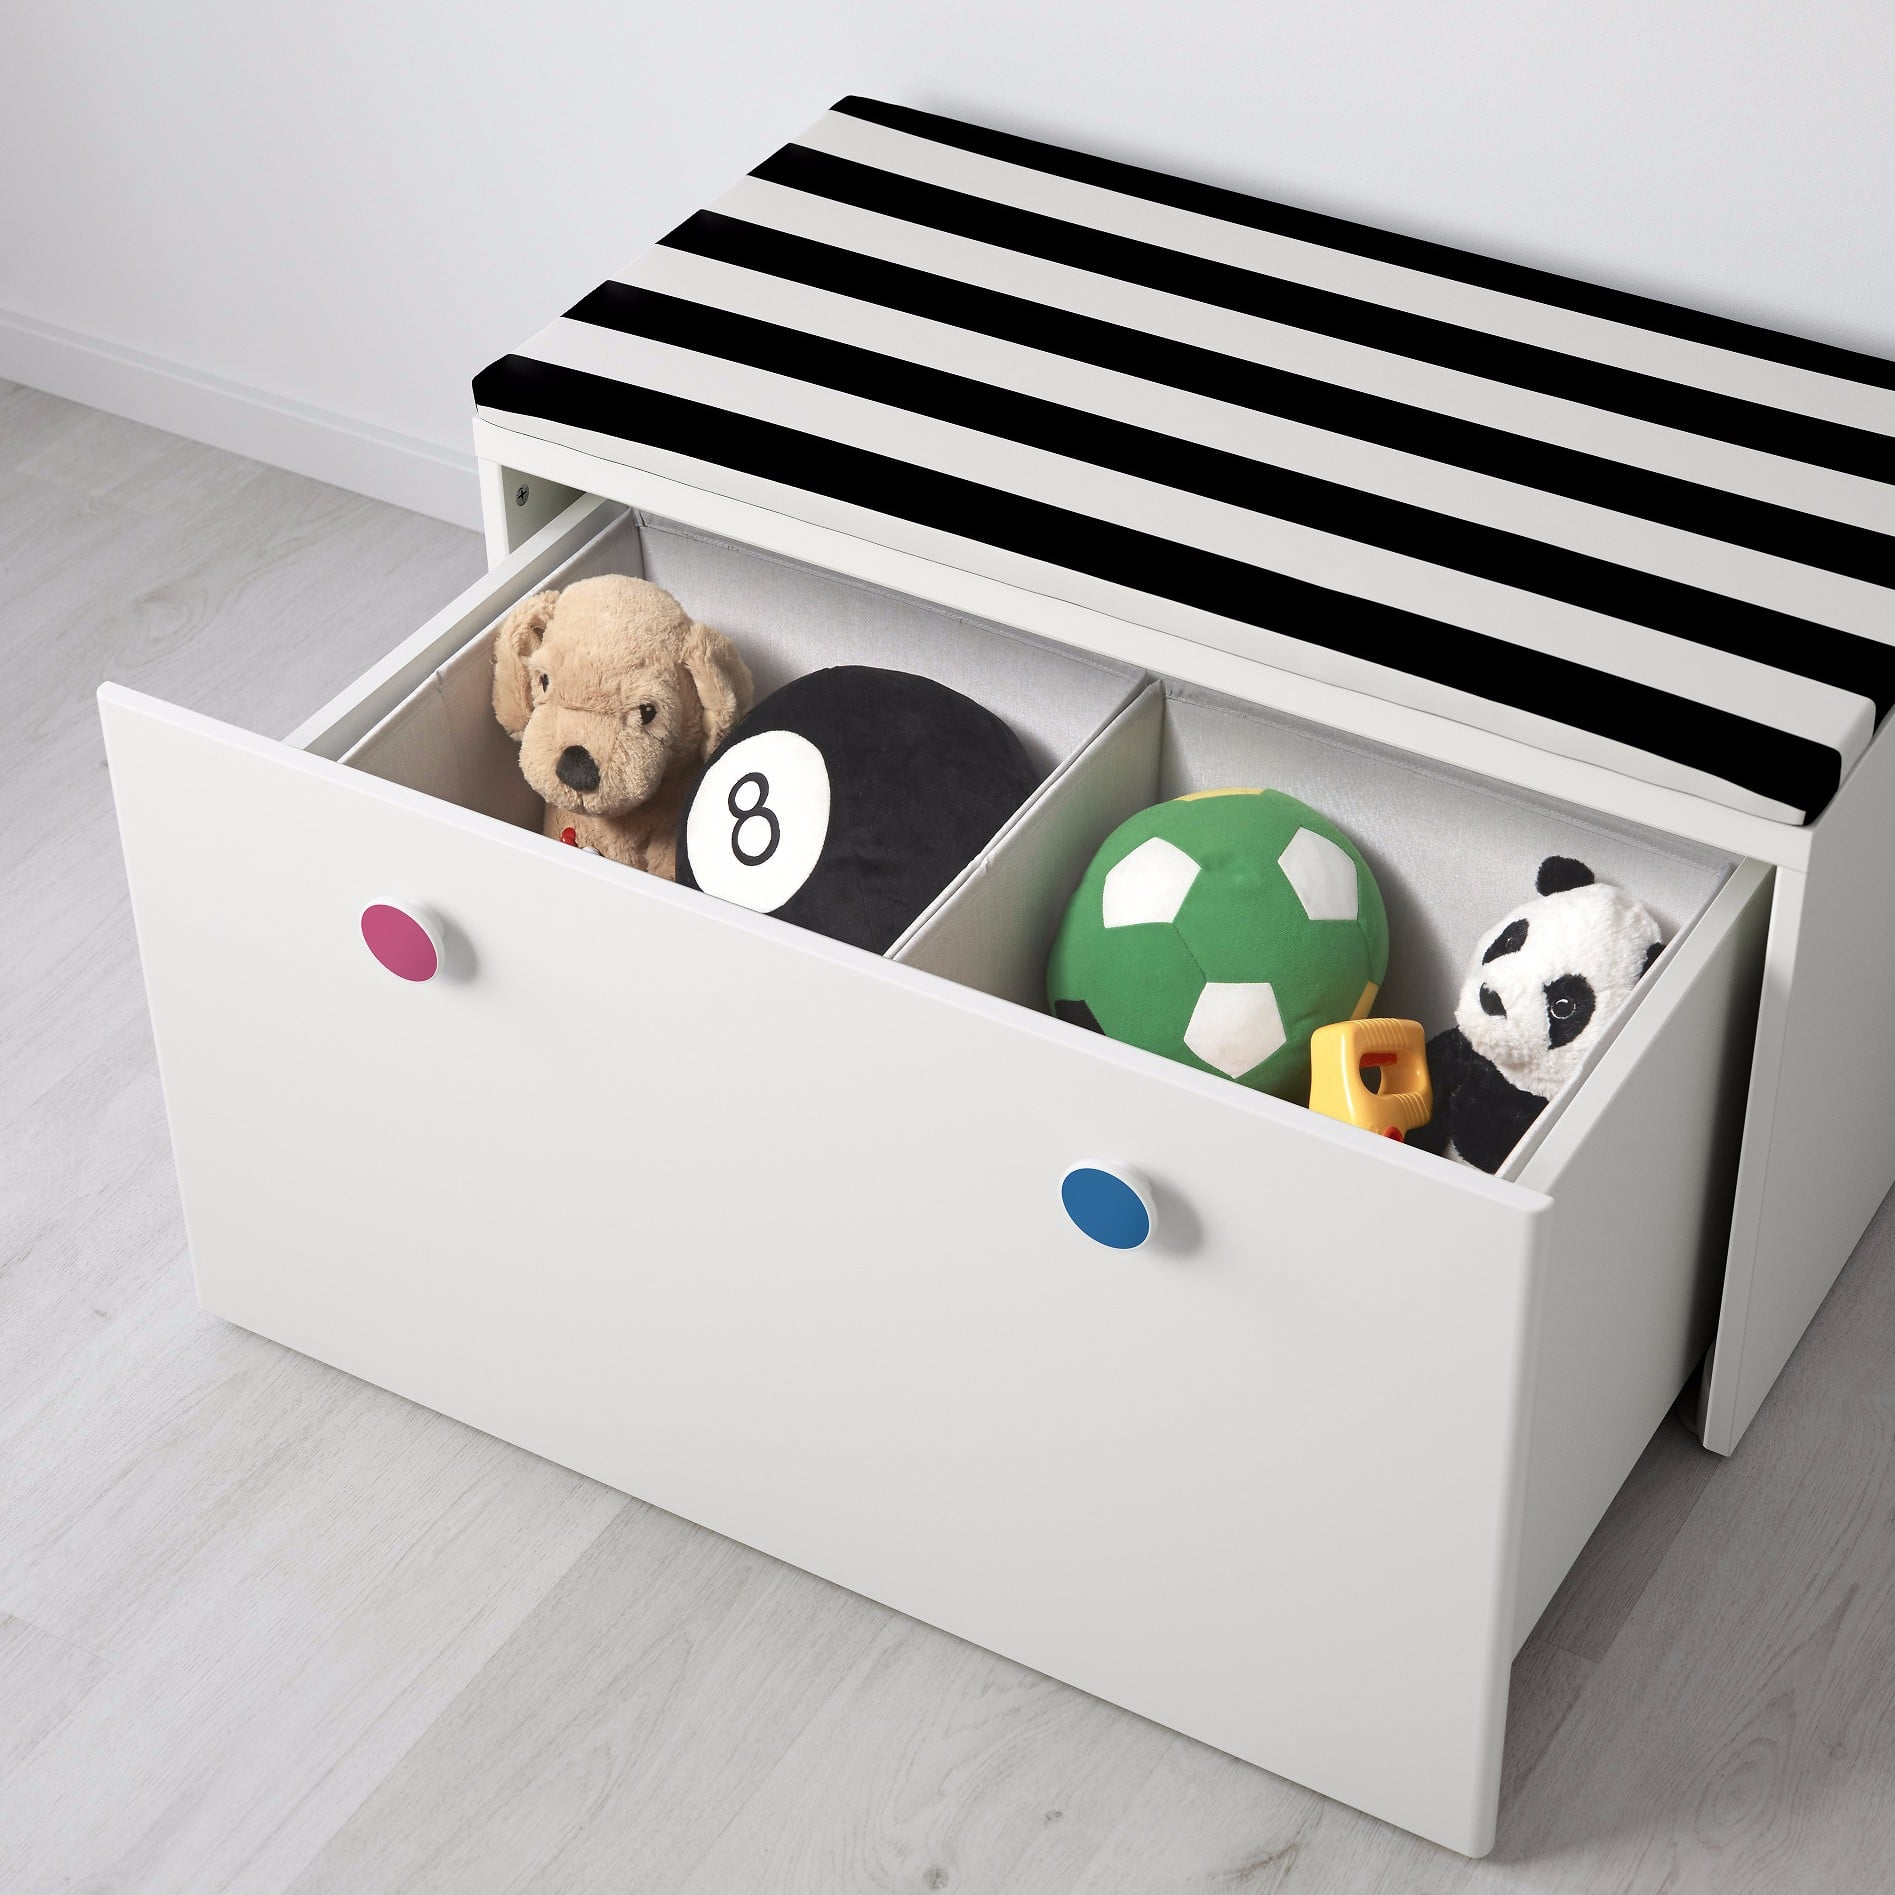 Ikea Toy Organizer Ikea Toy Storage Popsugar Home